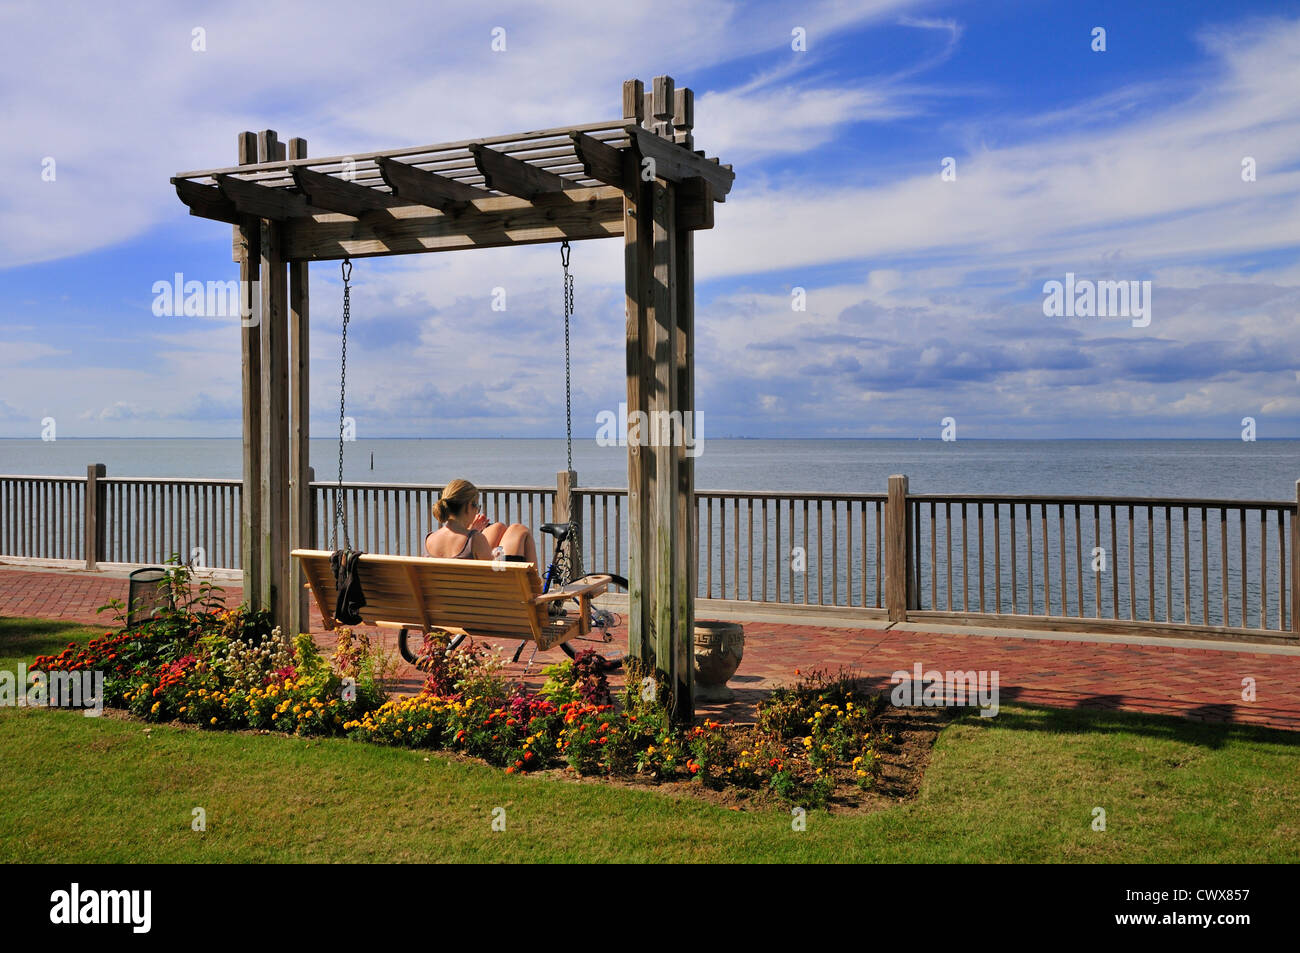 A bicyclist rests on a hanging bench near the Grand Hotel at Point Clear, Alabama - Stock Image